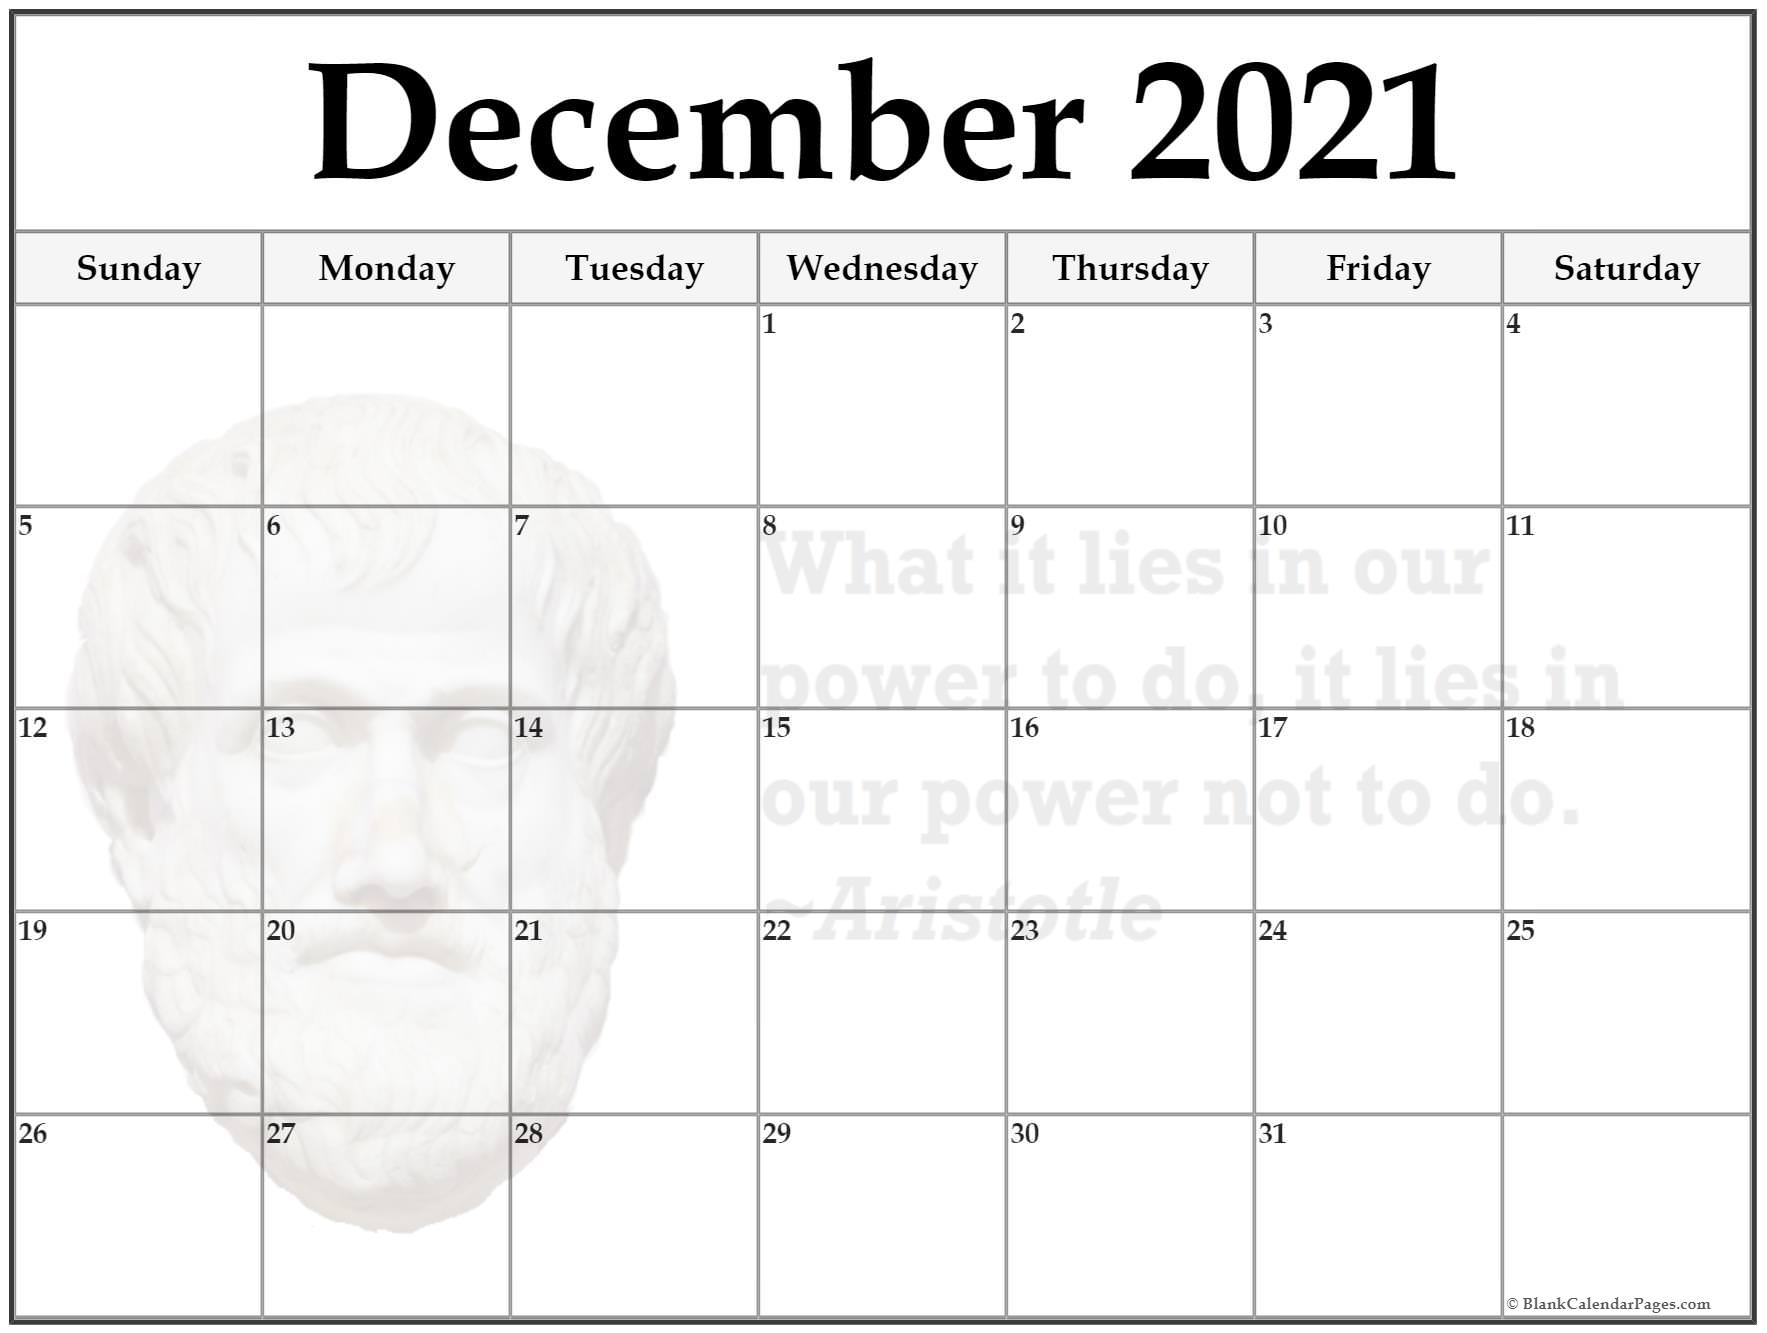 December calendar 2021What is lies in our power to do, it lies in our power not to do ~Aristotle